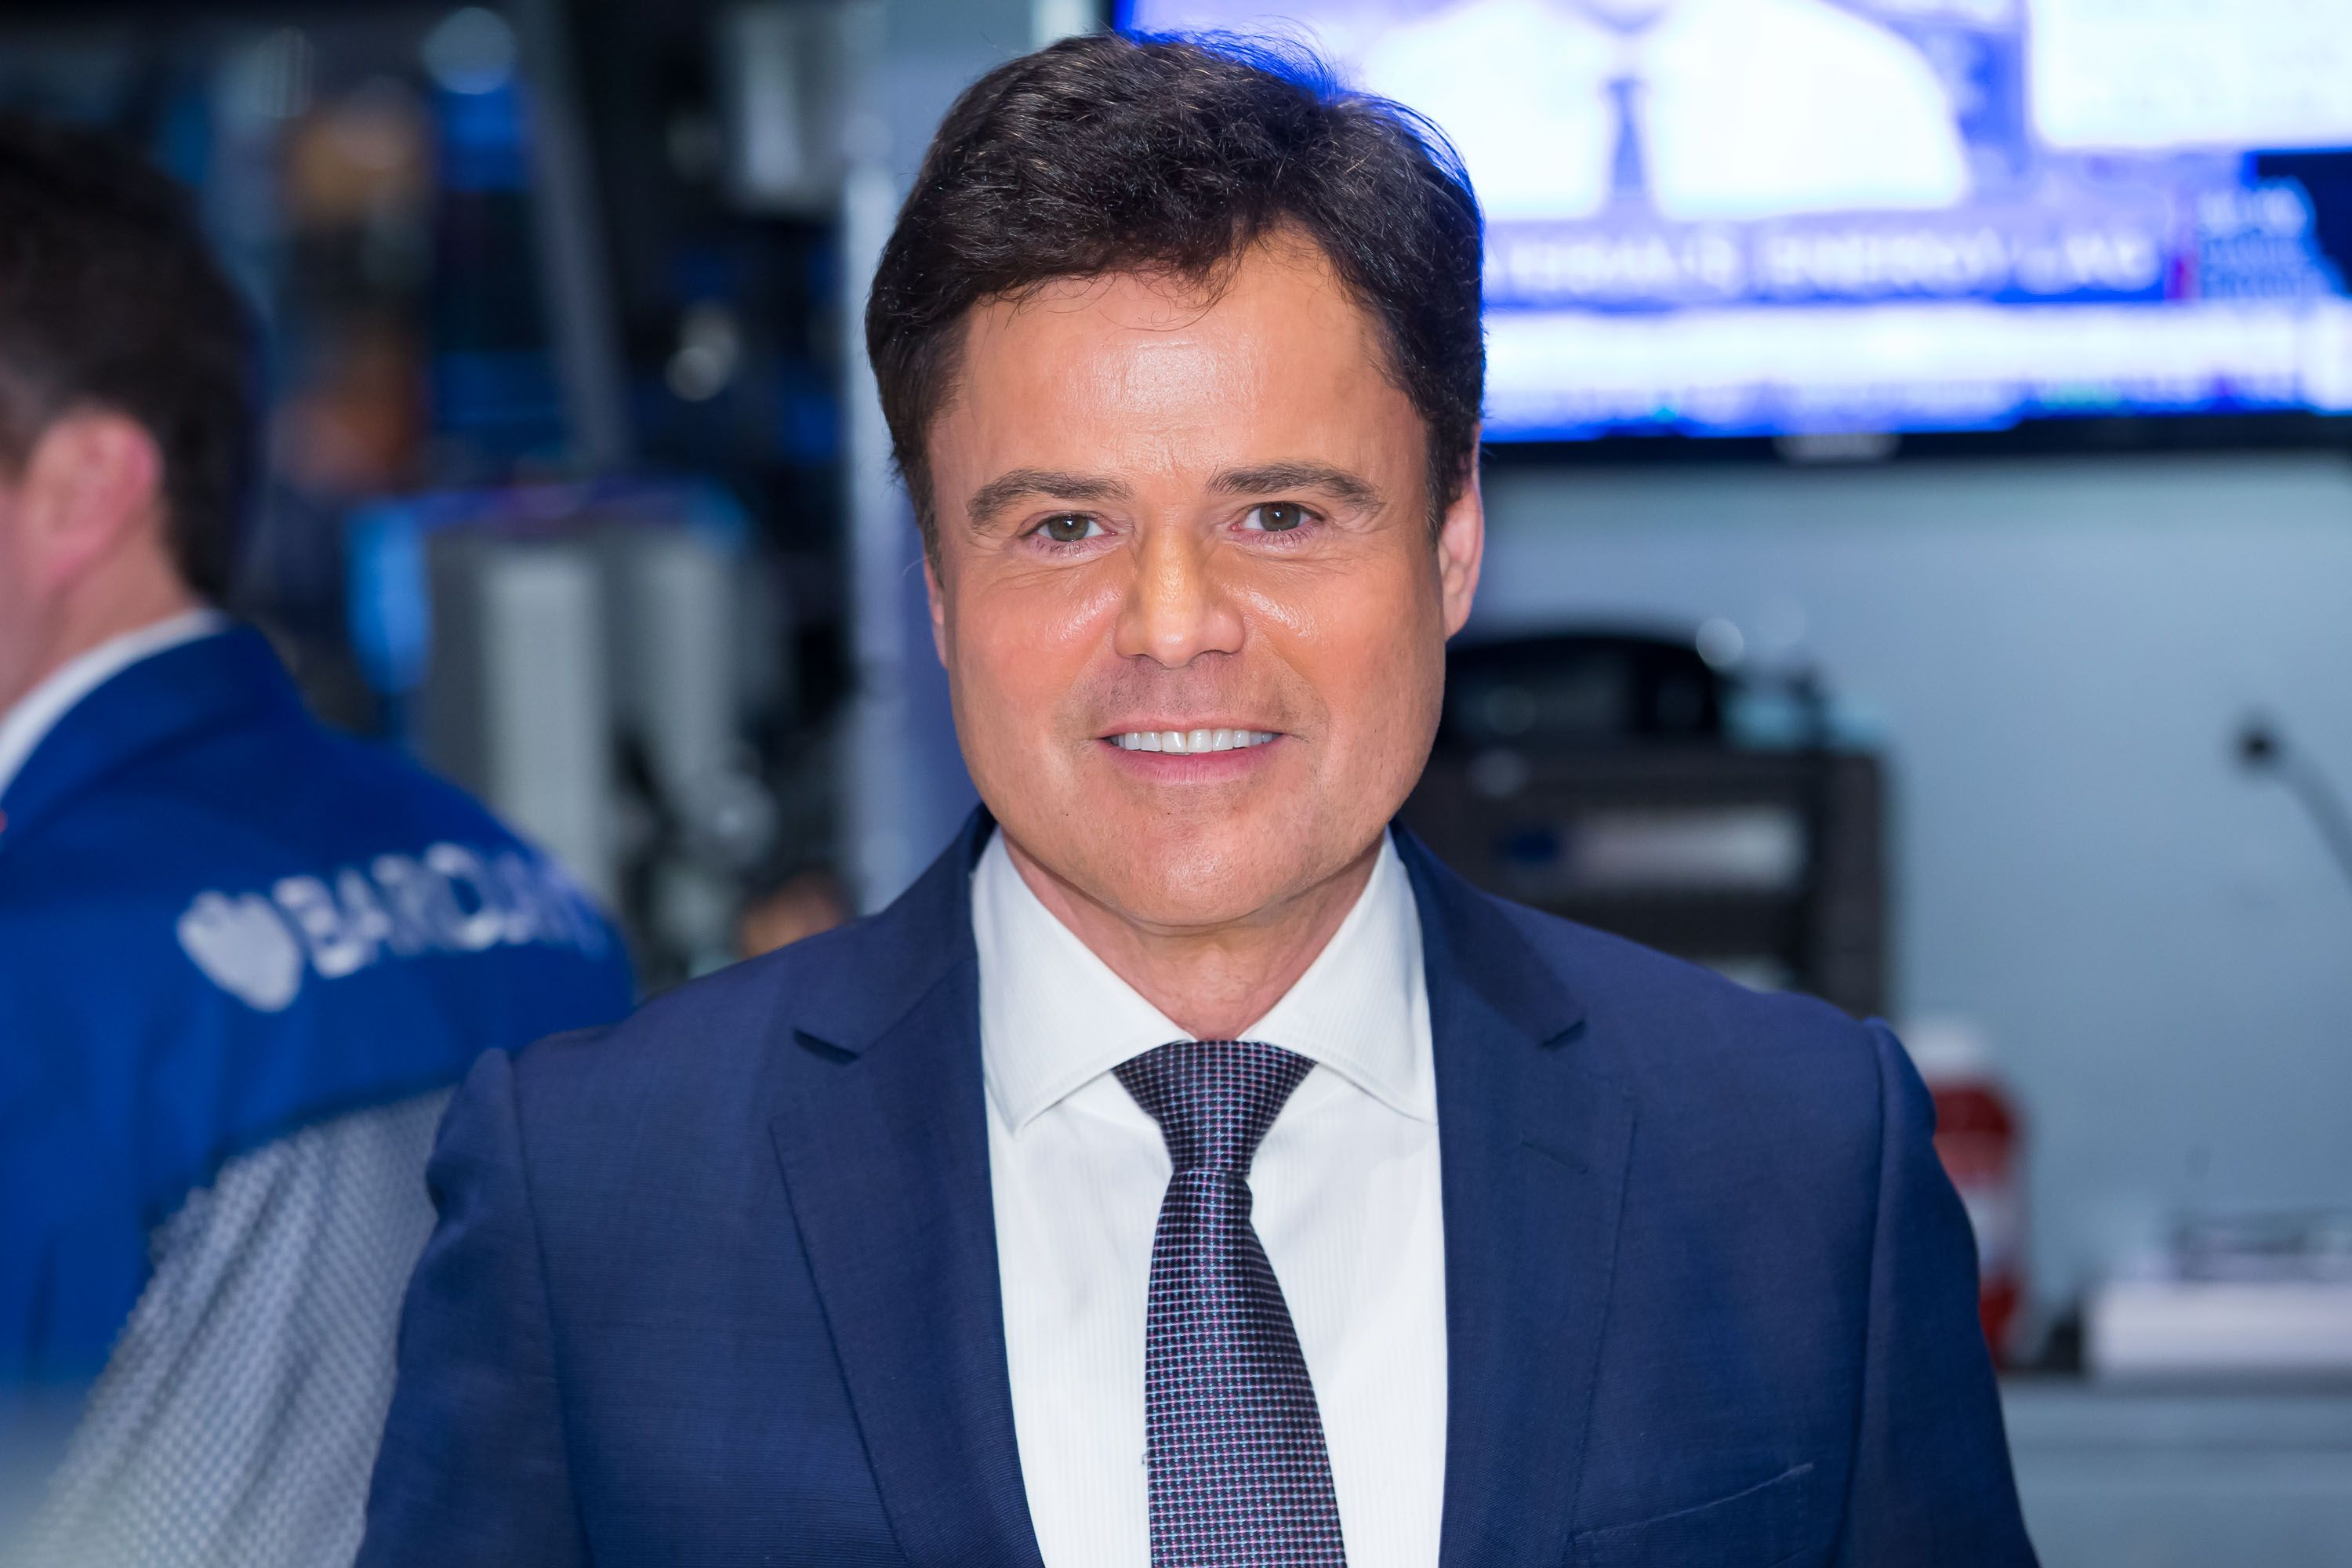 Donny Osmond rings the Closing Bell at New York Stock Exchange on January 13, 2015, in New York City   Photo:Getty Images